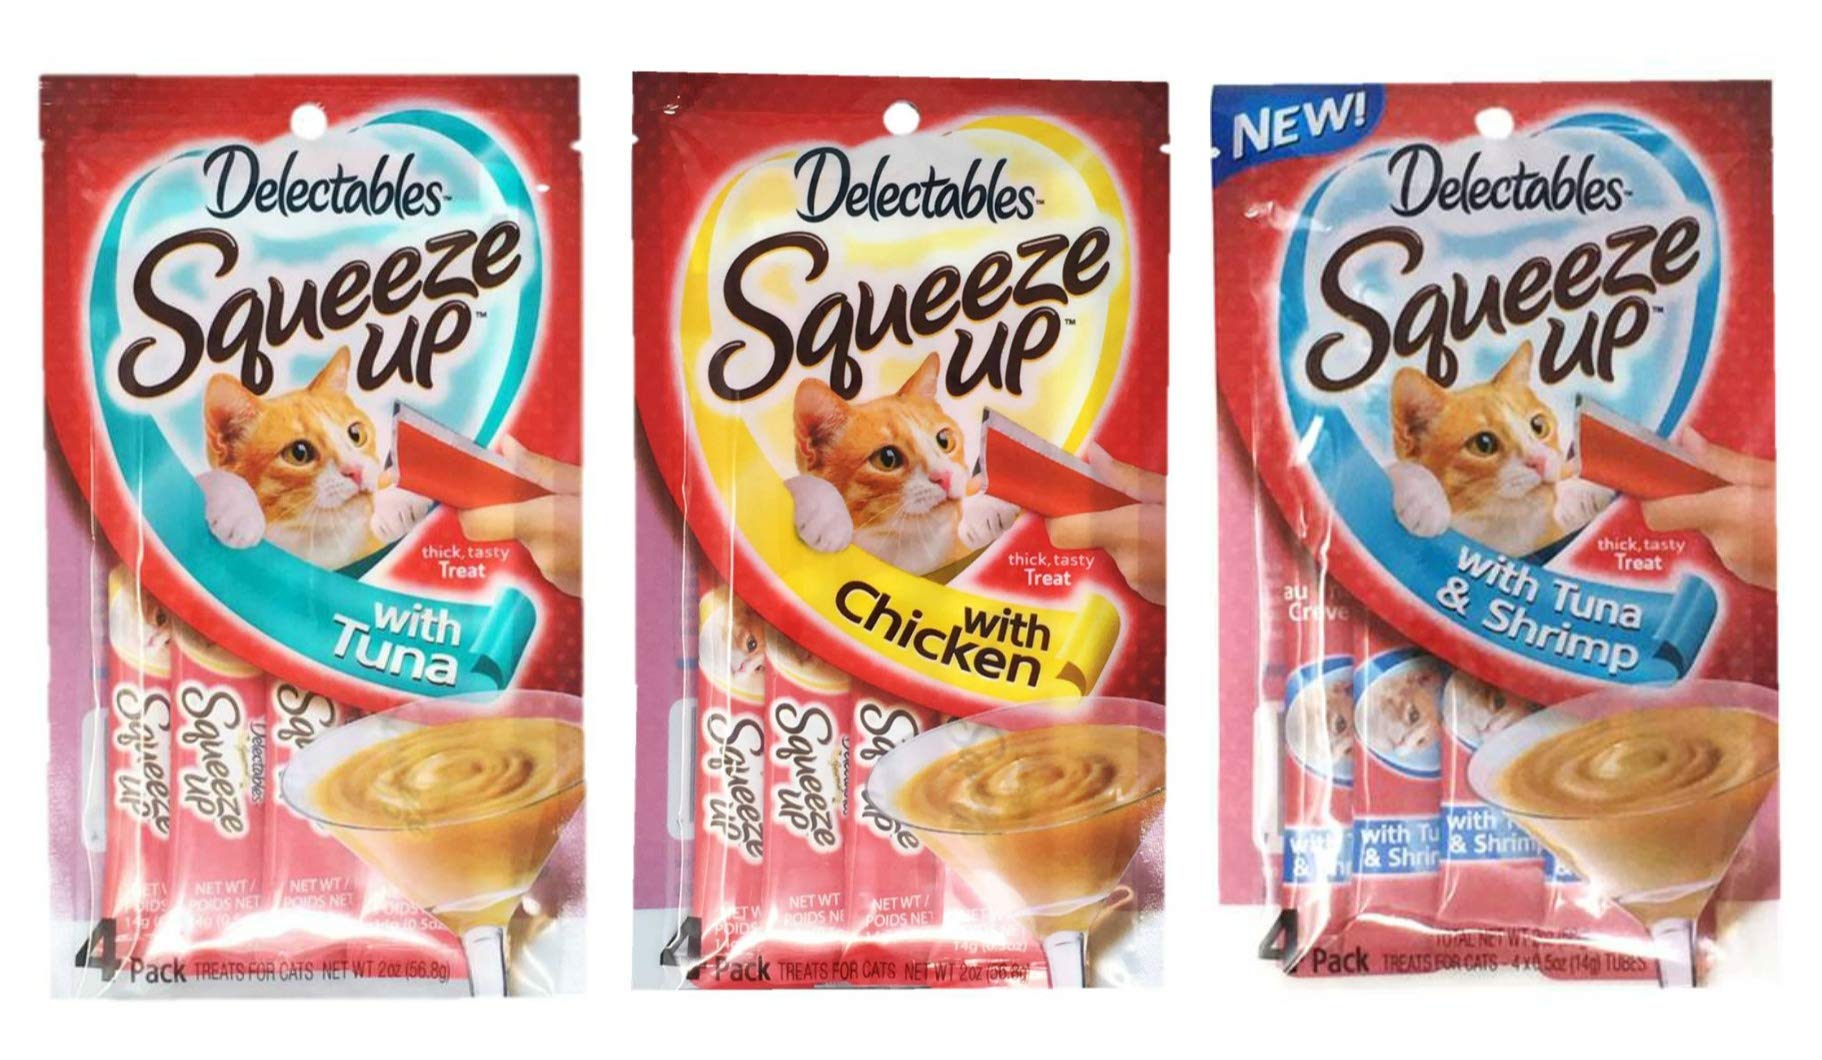 Delectables Squeeze Up Hartz Cat Treats Variety Pack Bundle of 3 Flavors (Tuna, Chicken, Tuna & Shrimp; 2.0 oz Each) by Delectables Squeeze Up